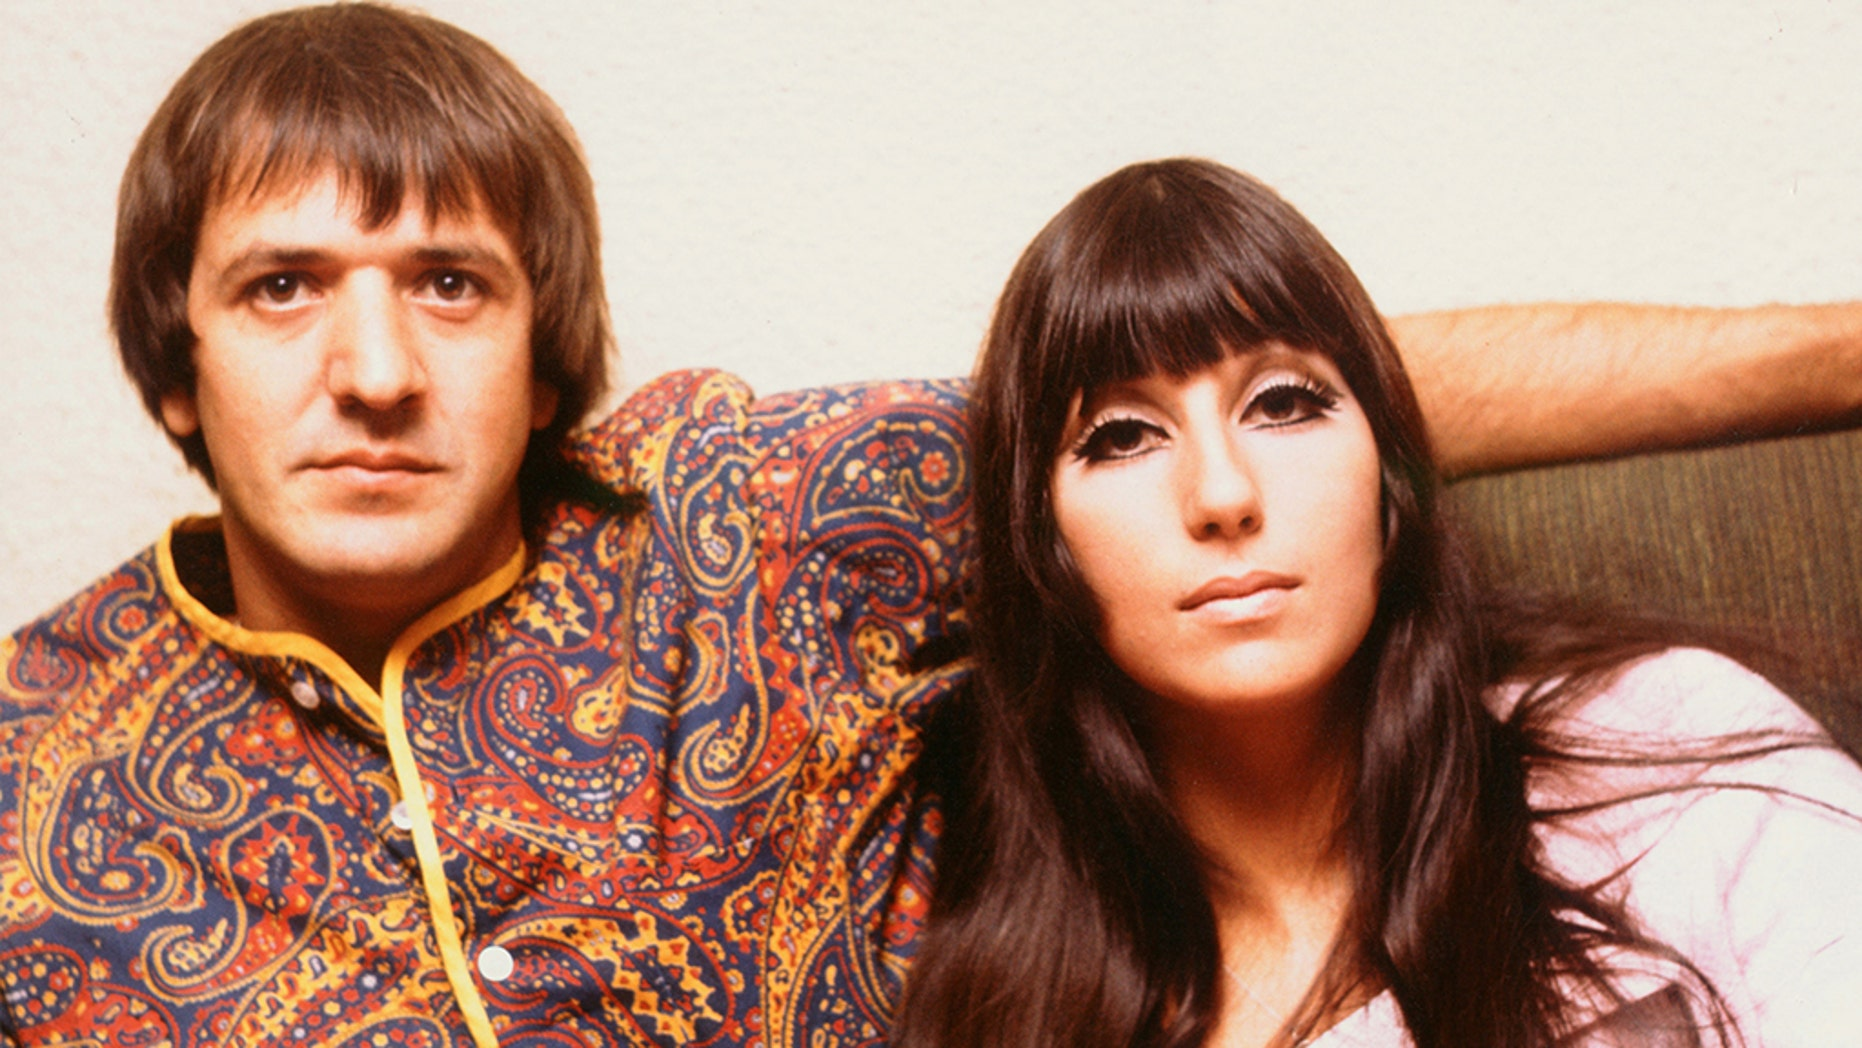 Sonny Bono reportedly told his future wife – and ex-wife – Cher that he didn't think she was especially good-looking not long after they'd met each other.